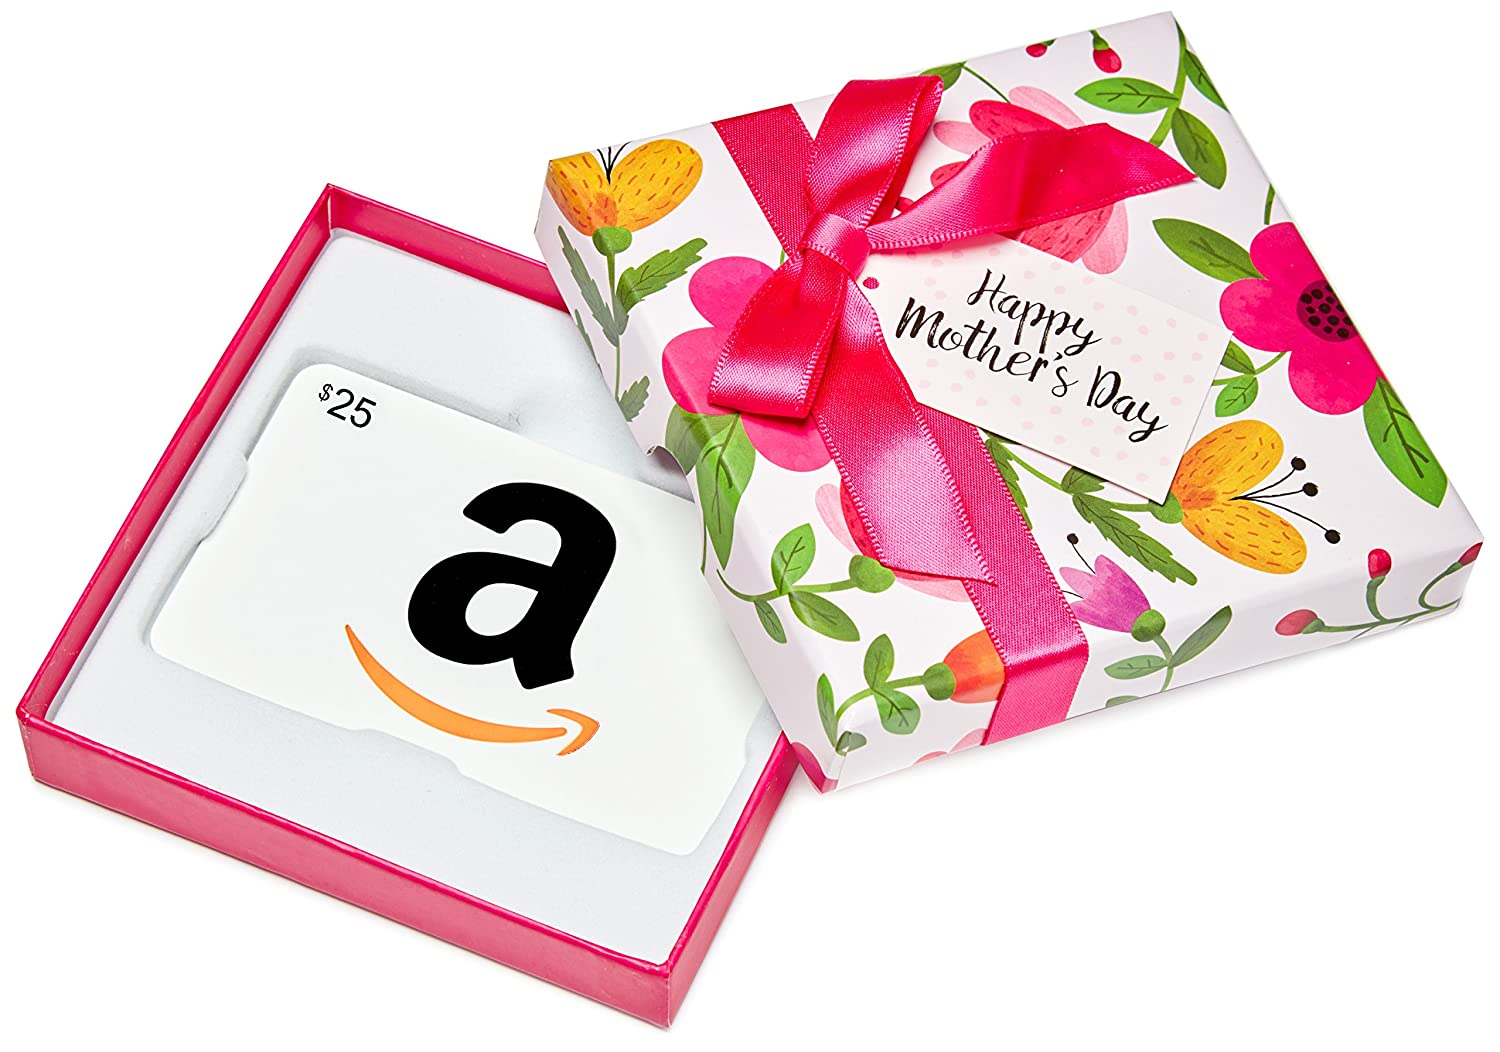 Amazon.ca Gift Card in a Floral Box (Classic White Card Design) Amazon.com.ca Inc.